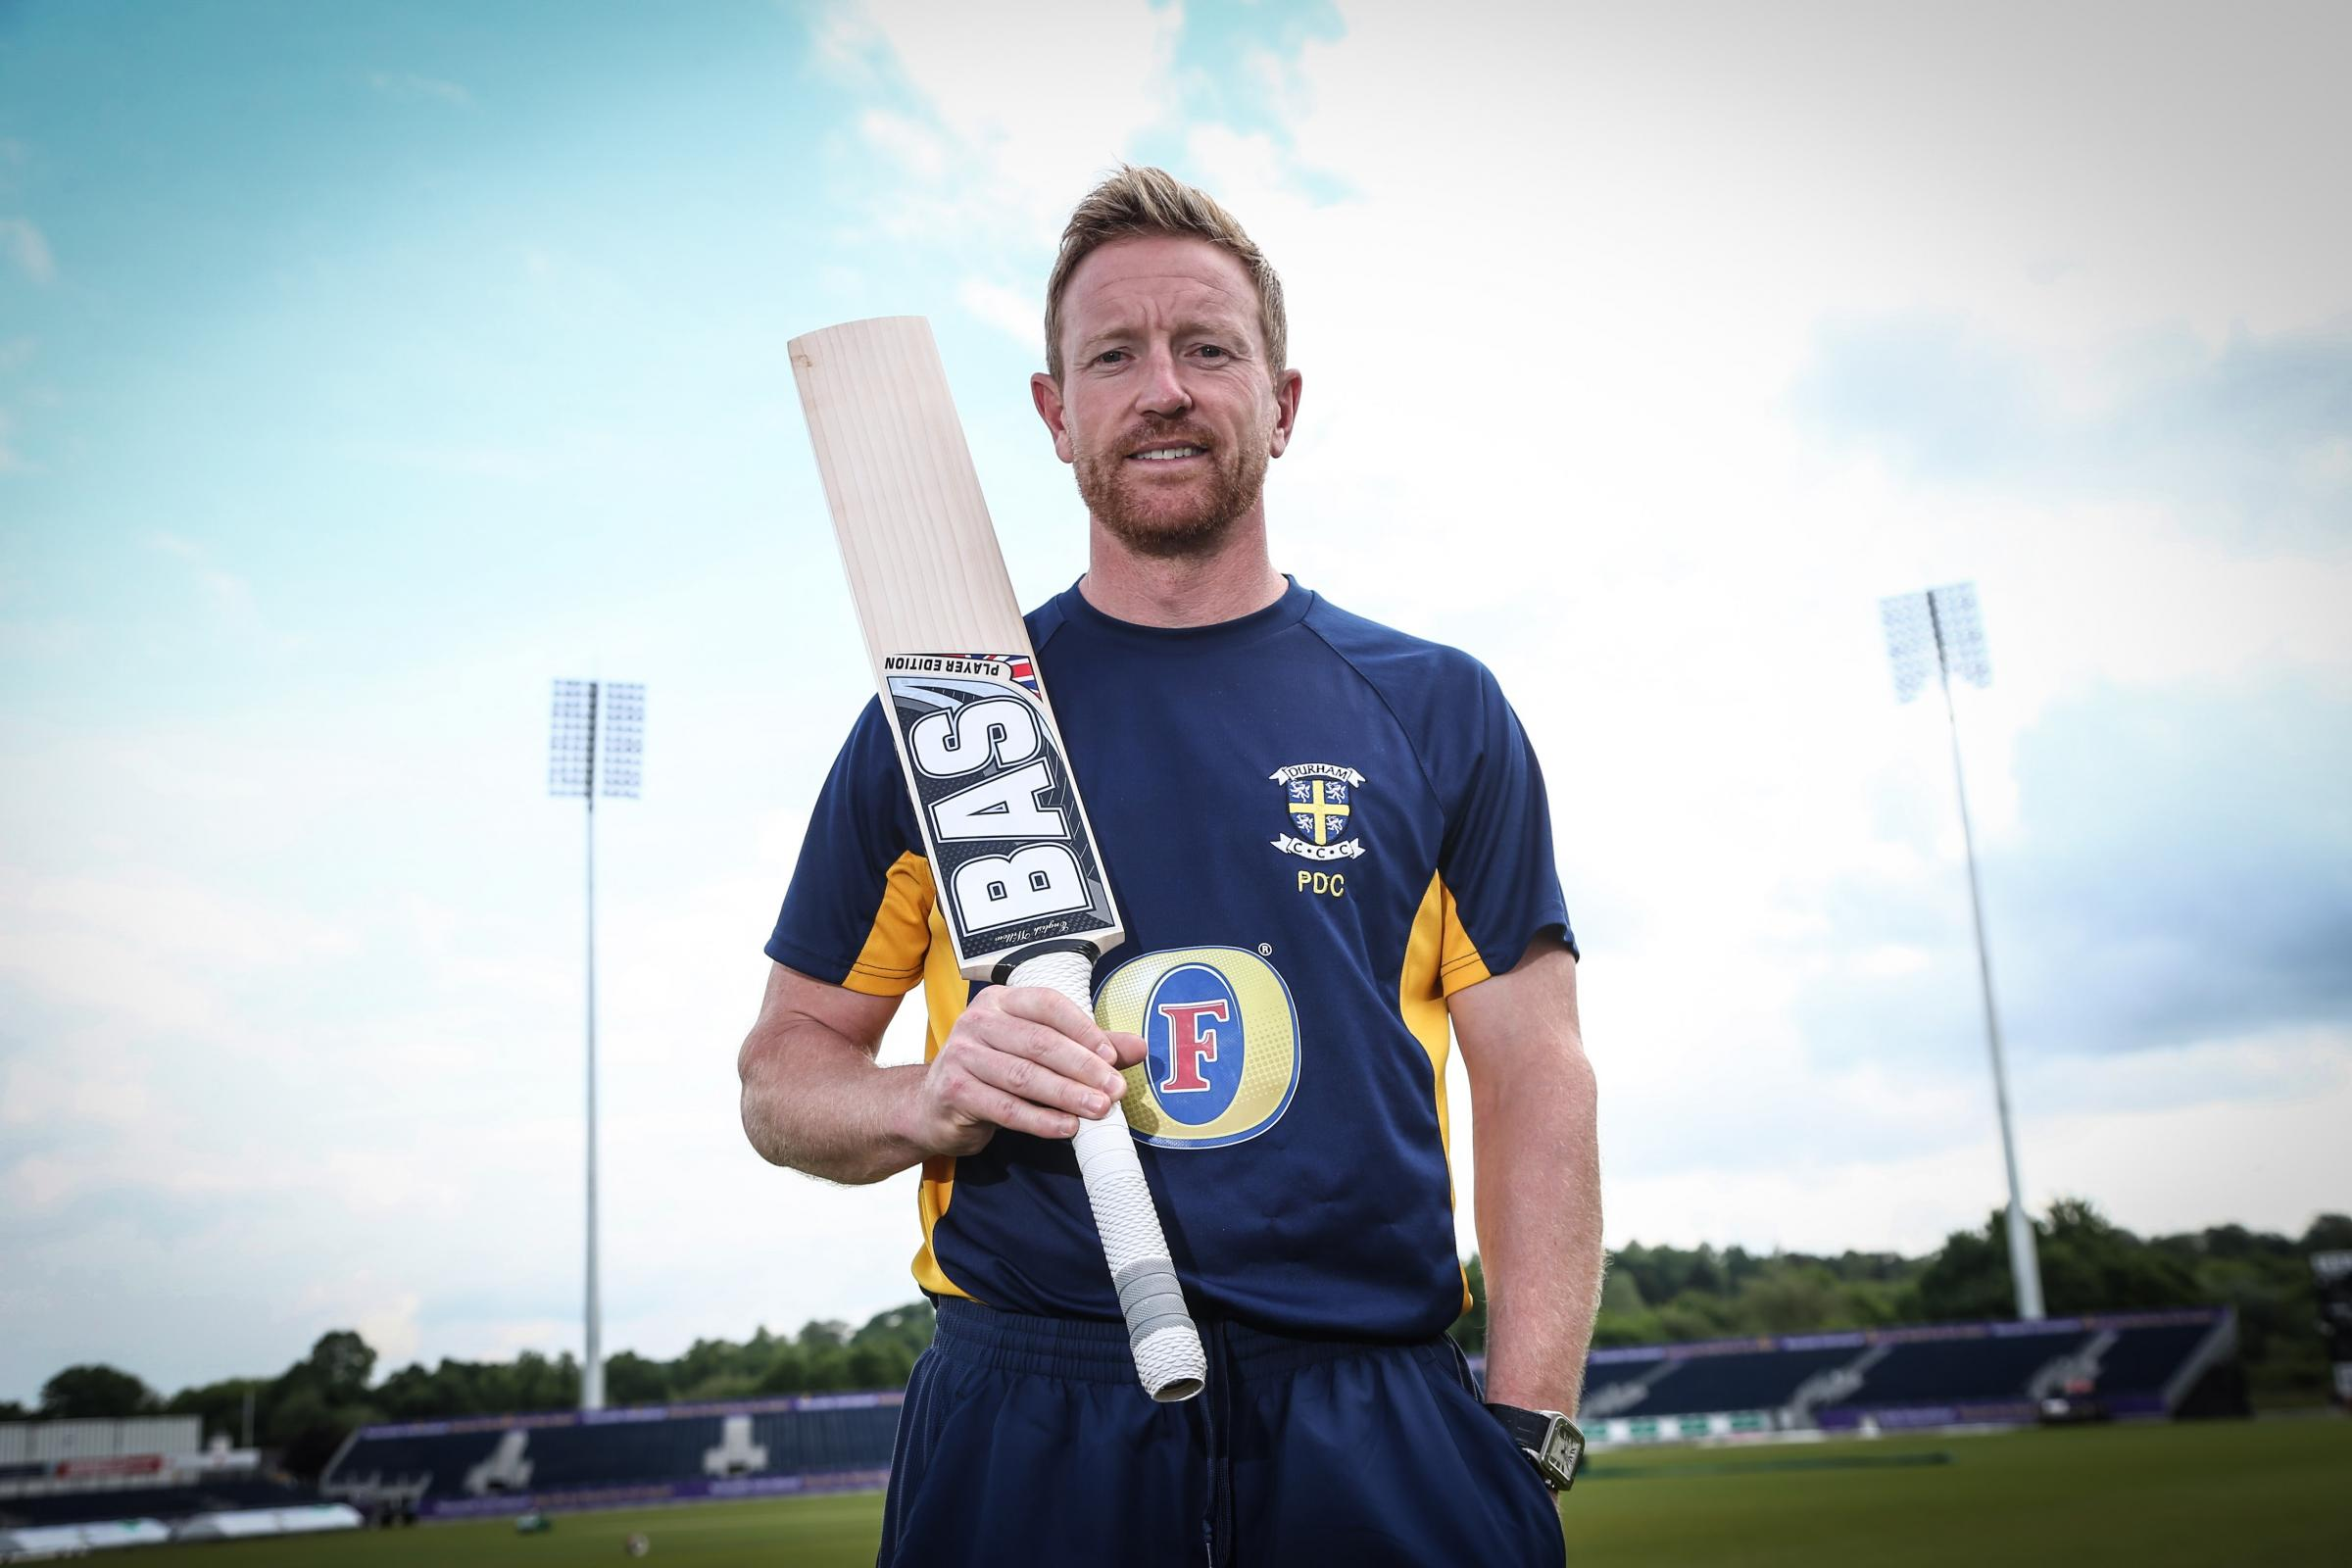 Durham CCC cricketer Paul Collingwood. Picture: TOM BANKS.